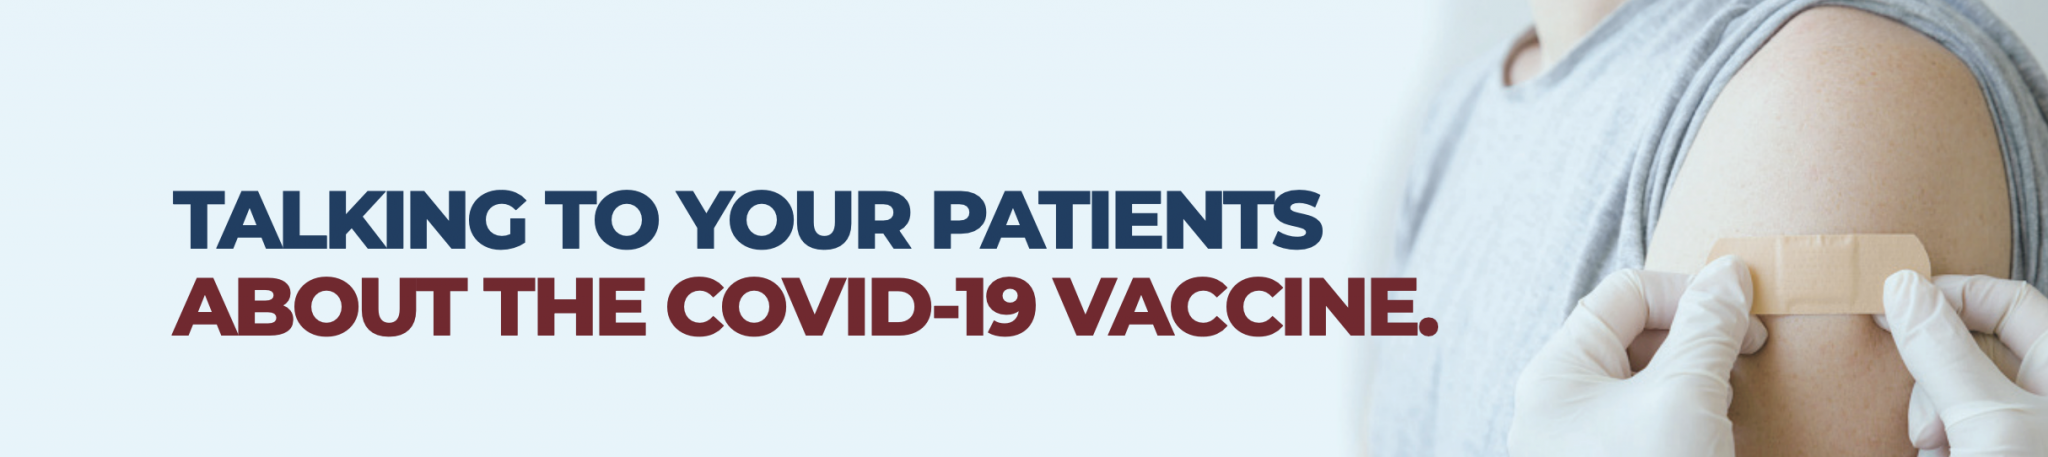 Talking to your patients about the COVID-19 Vaccine